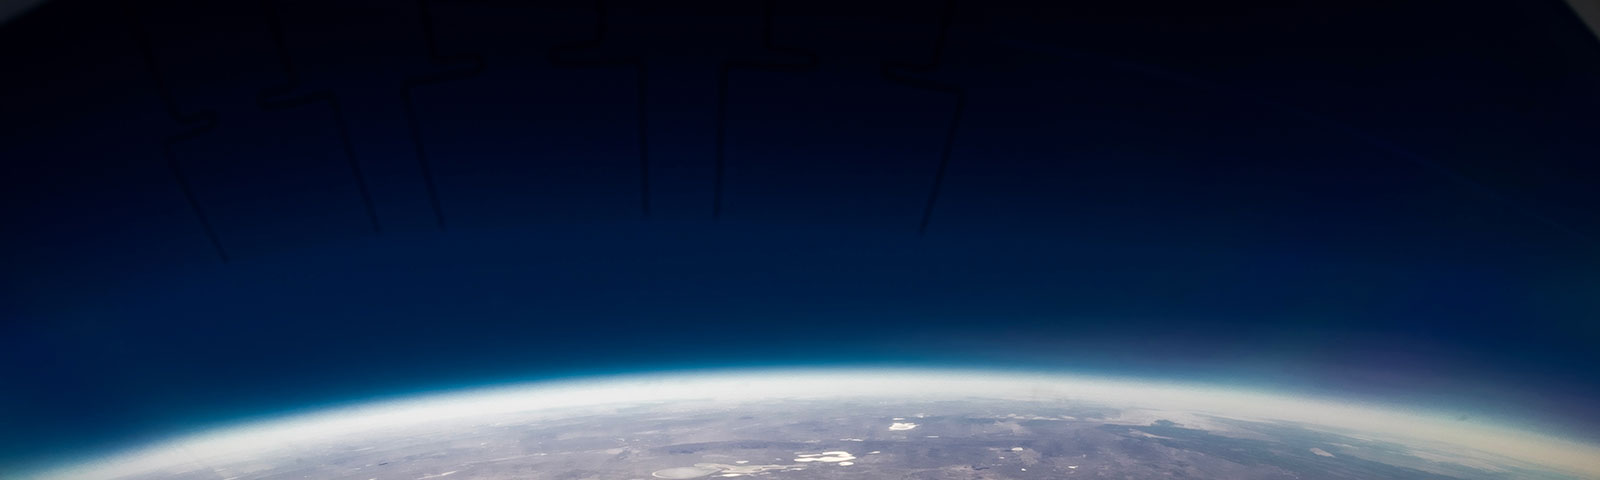 Earth from orbit